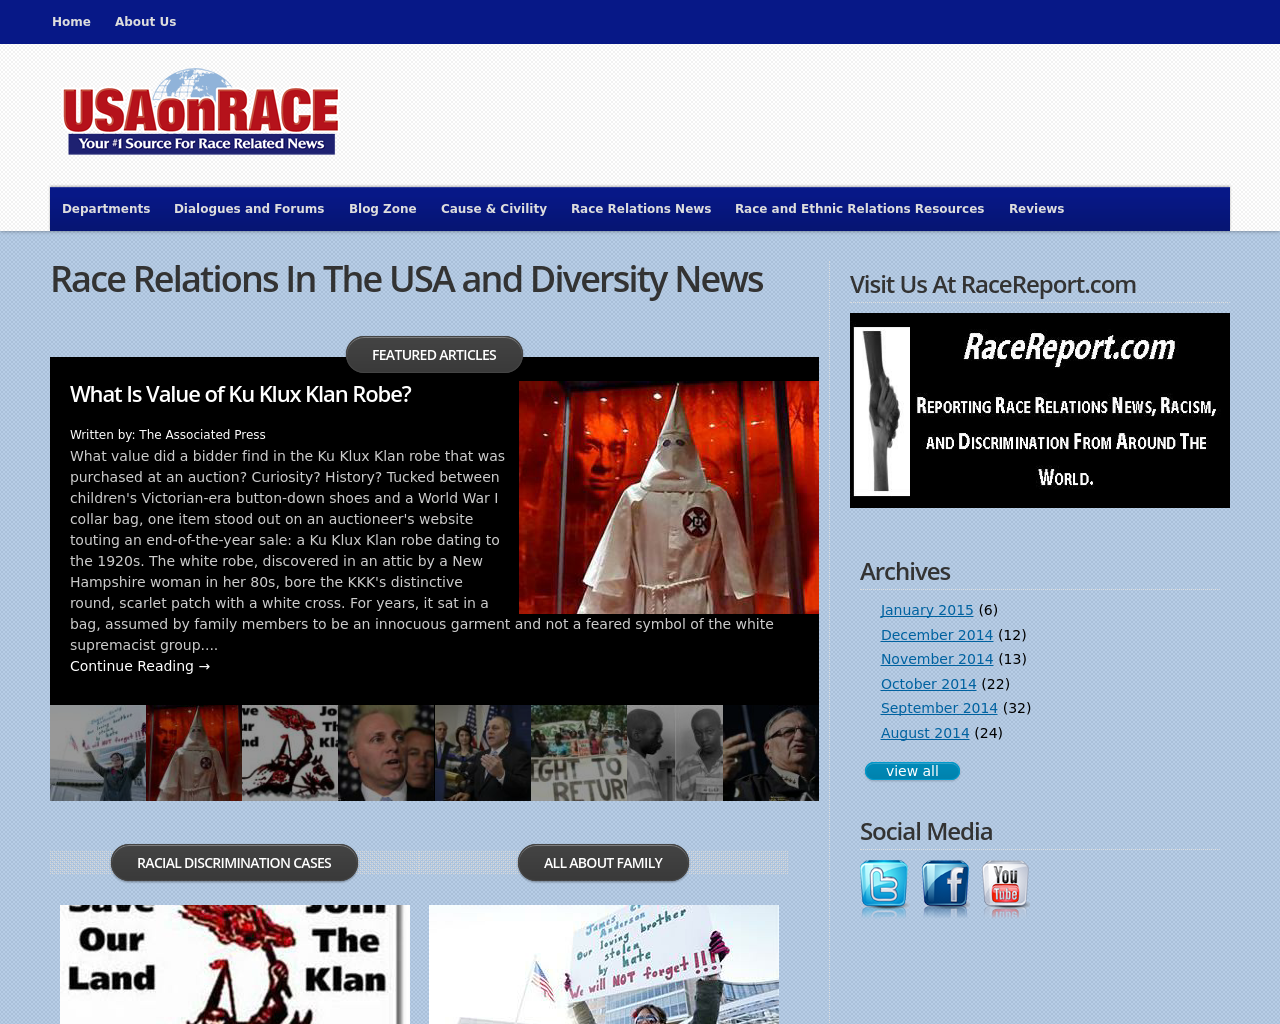 USAonRace-Advertising-Reviews-Pricing